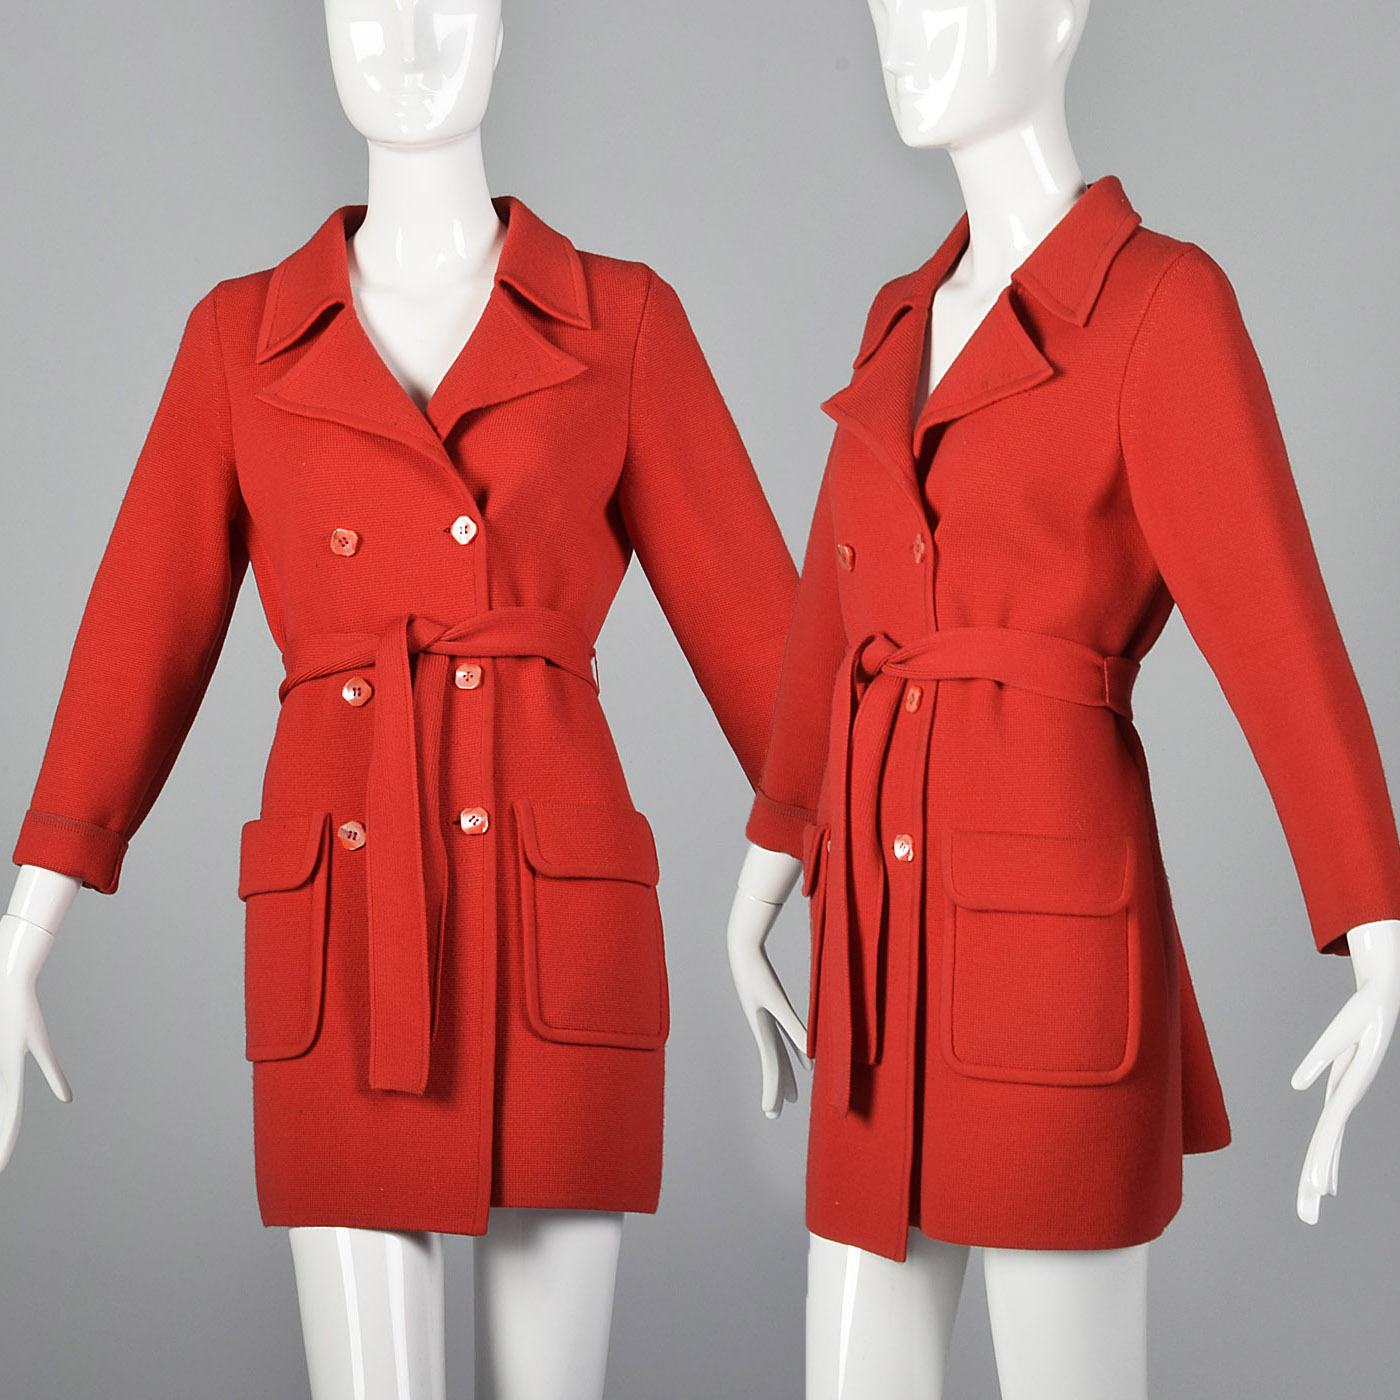 XS Red Knit Cardigan Coat Vintage 1960s Patch Pockets Belted Warm Fall Jacket